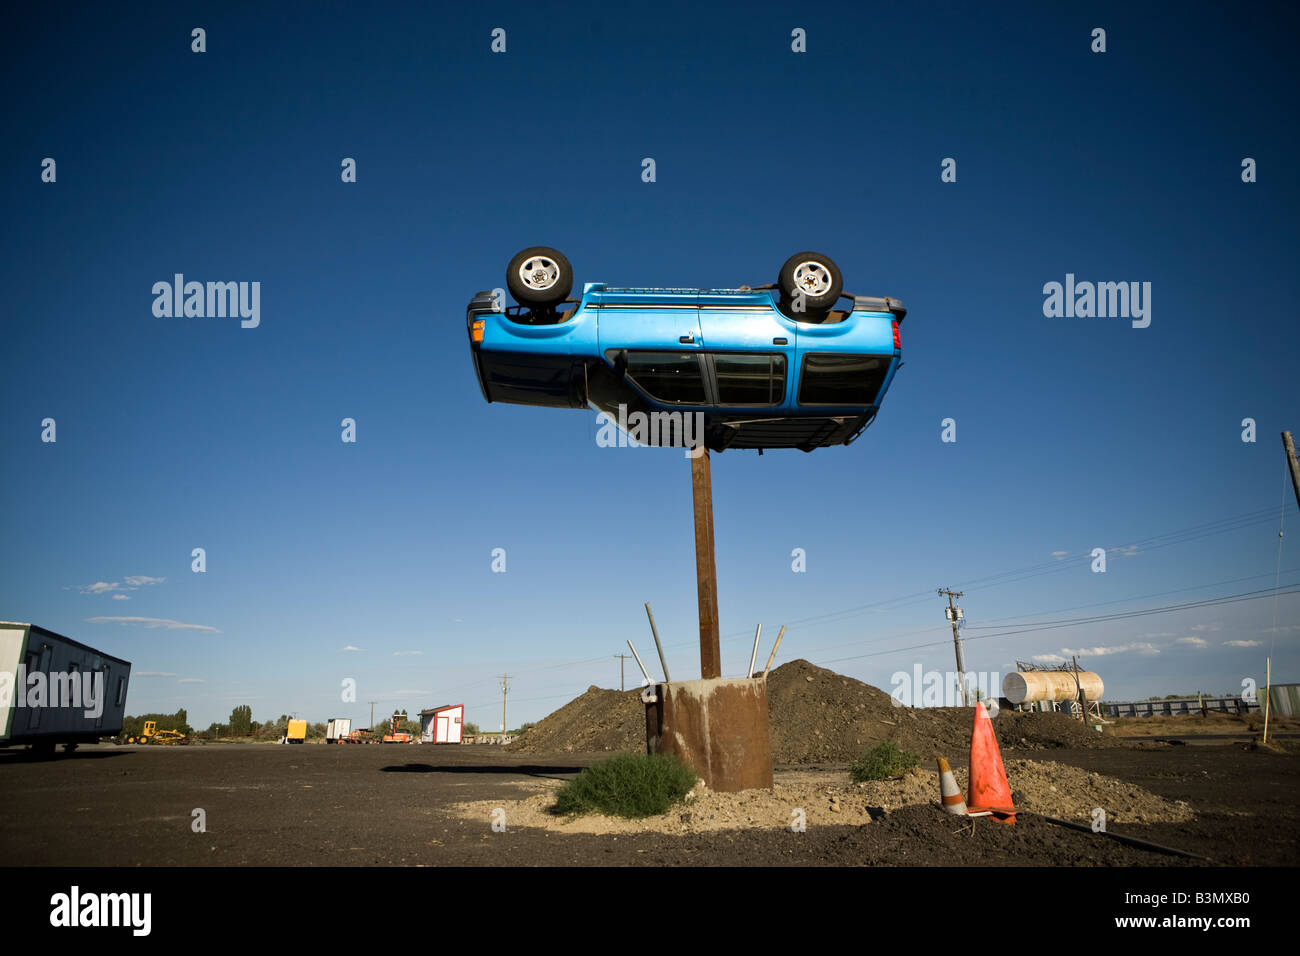 A Ford Explorer SUV turned upside down sits atop a 15 feet high metal column. - Stock Image